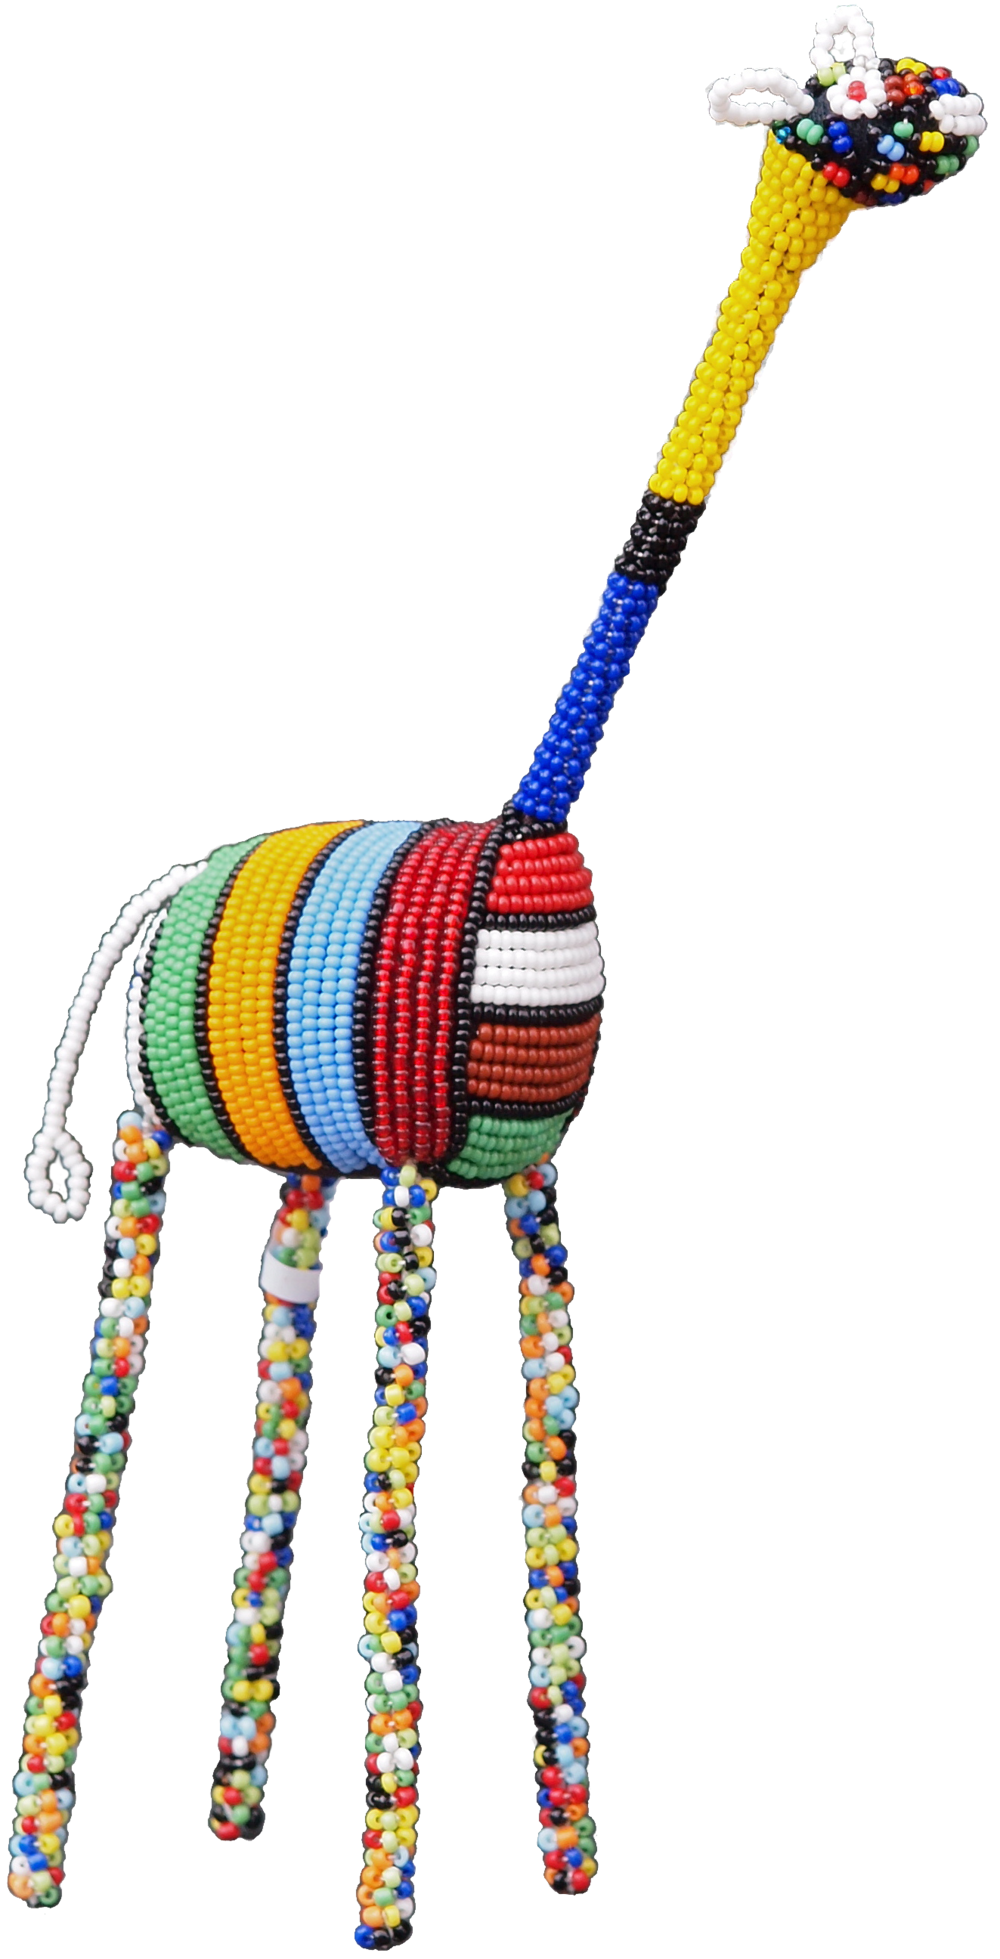 Edited_Beaded Giraffe (2).png